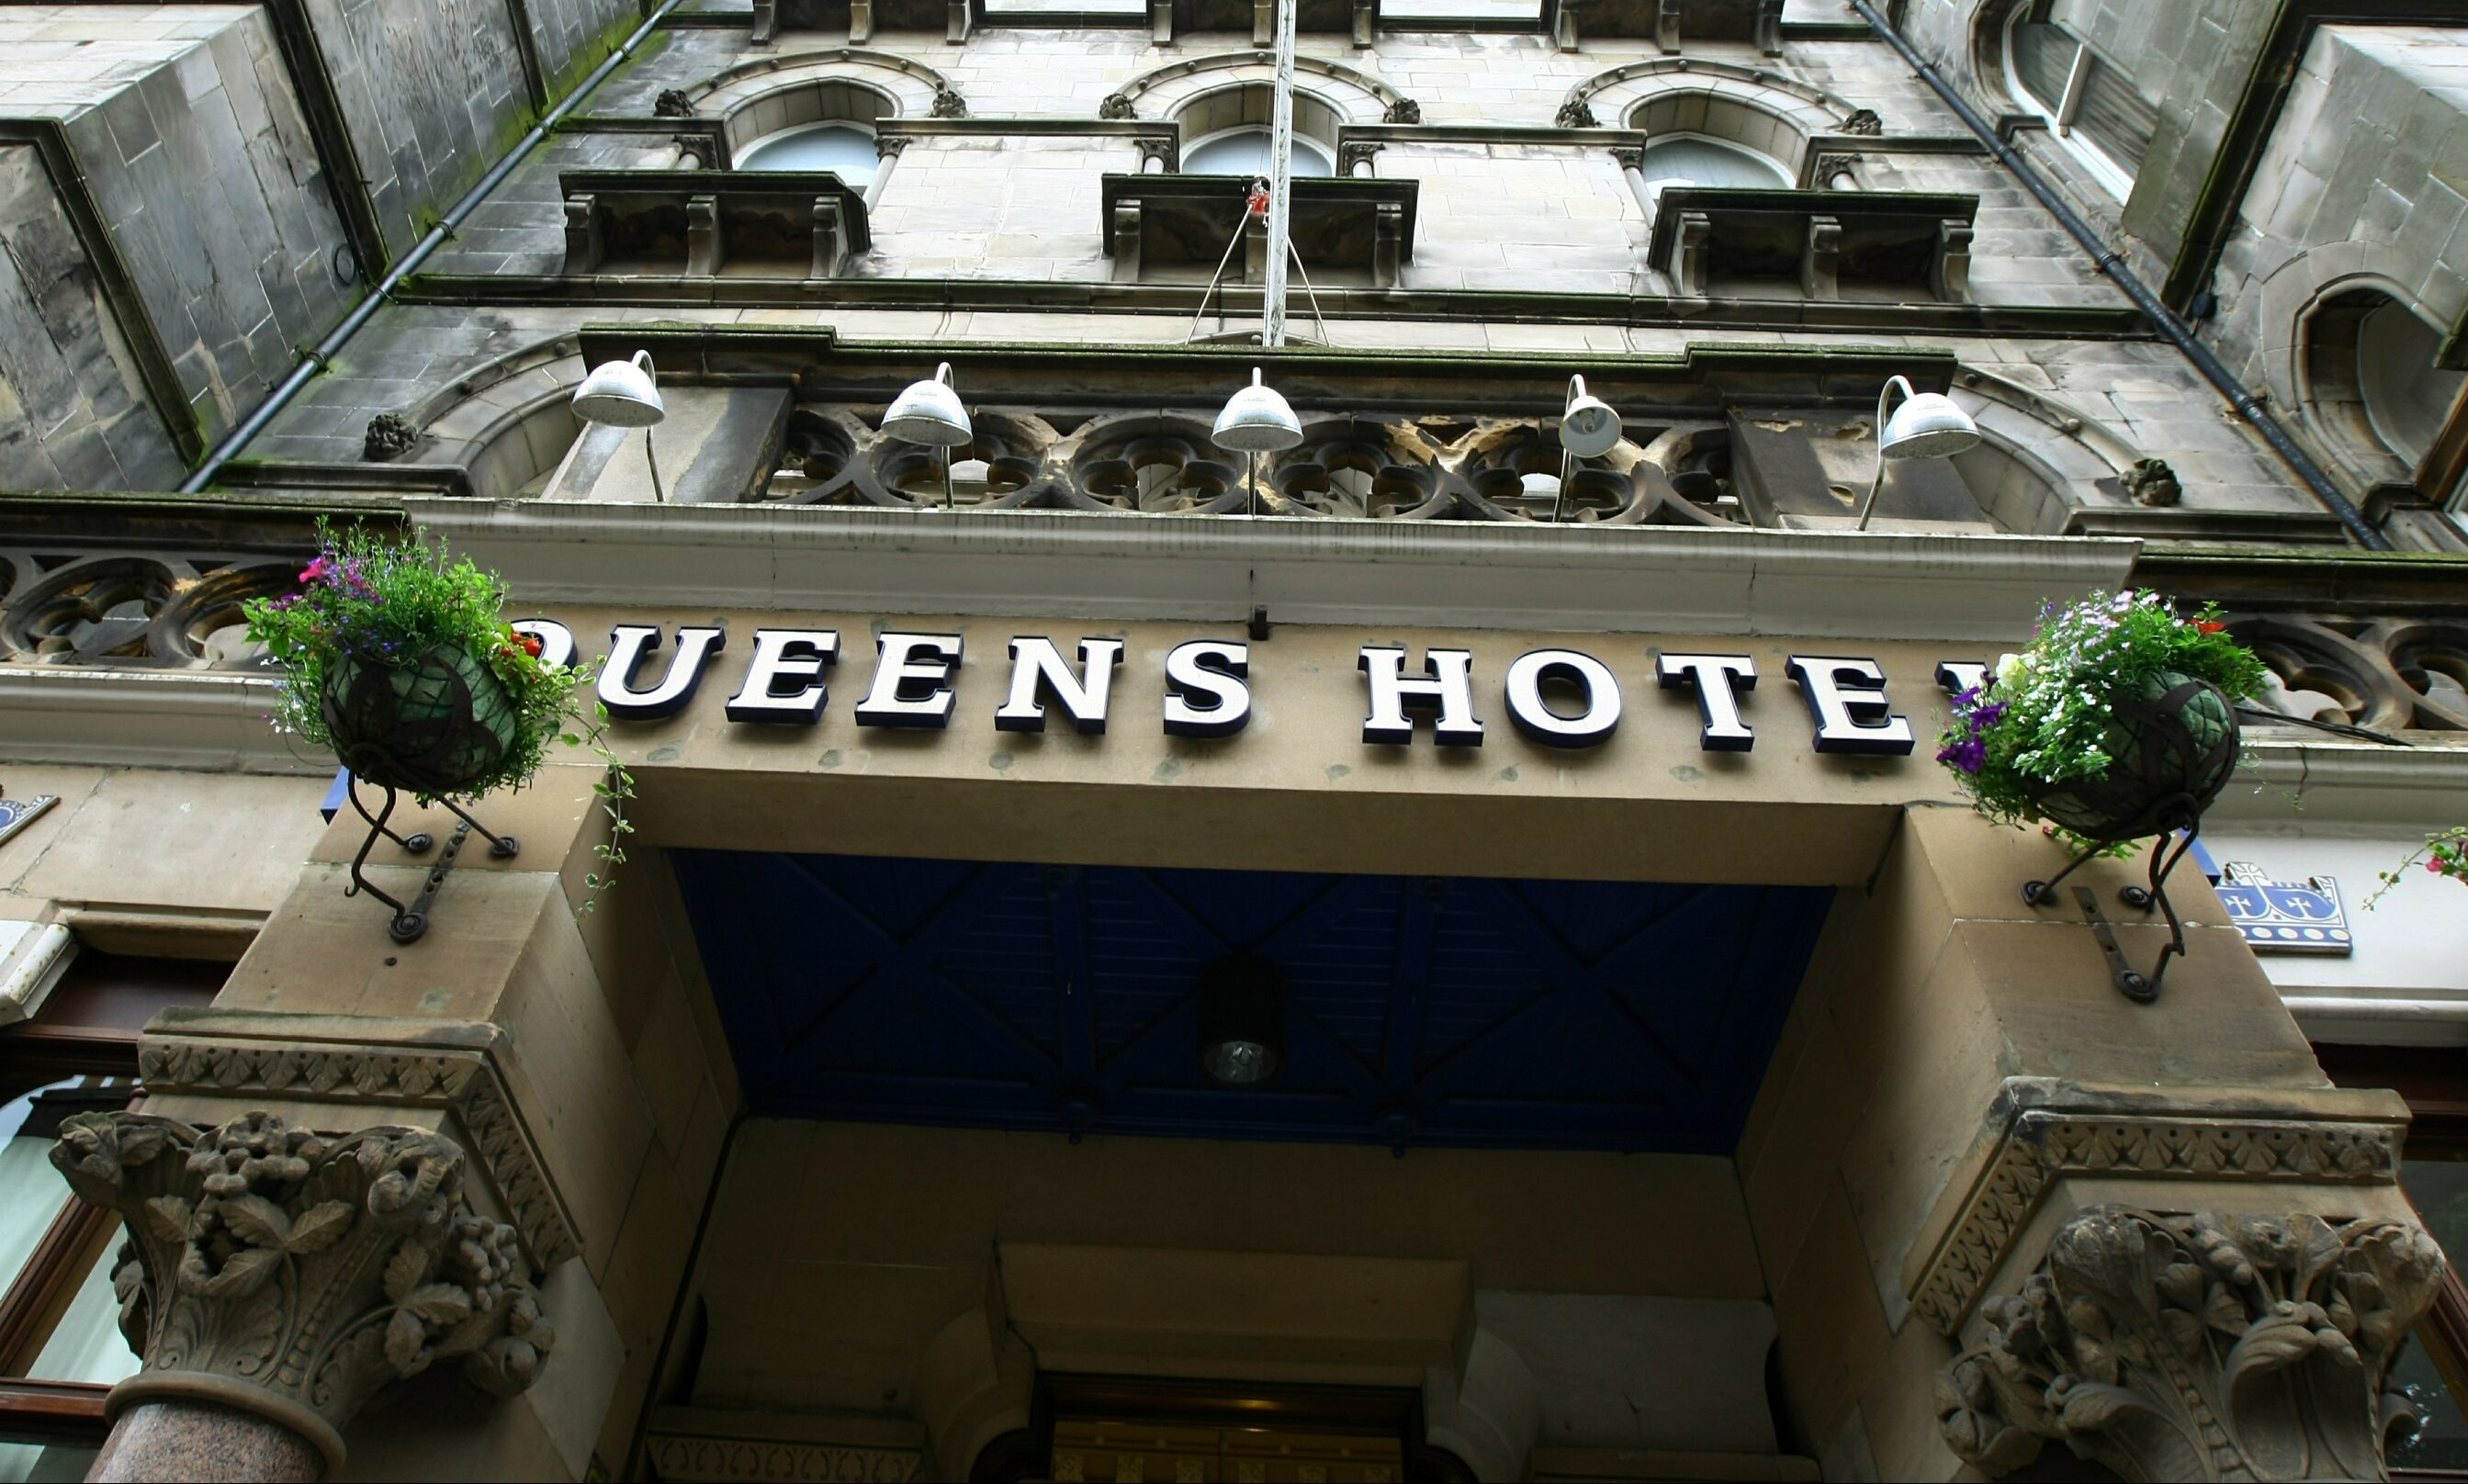 The Queen's Hotel in Dundee.